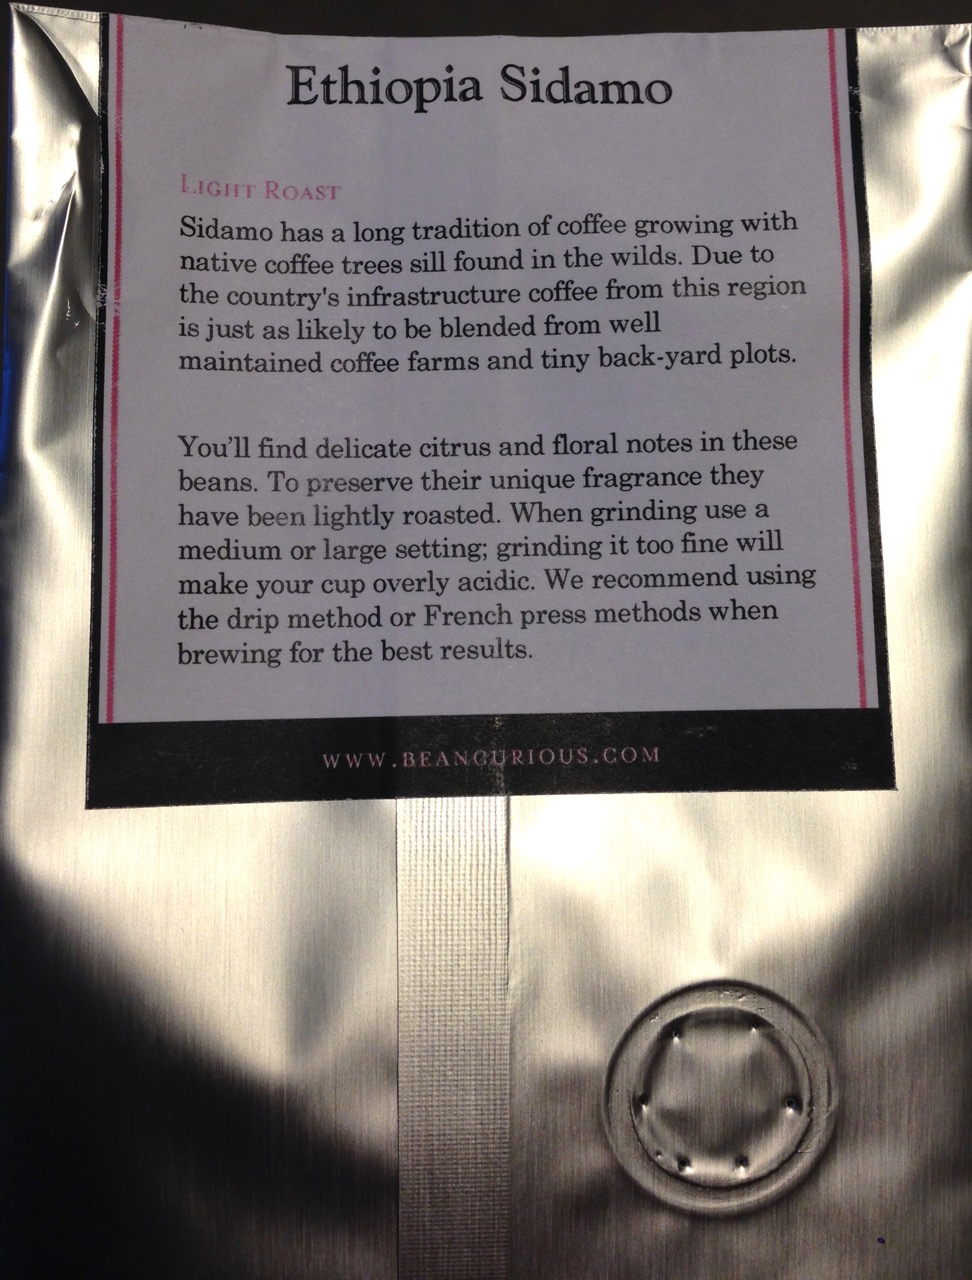 Sidamo back label. A quality bag, good description and even nice lettering.